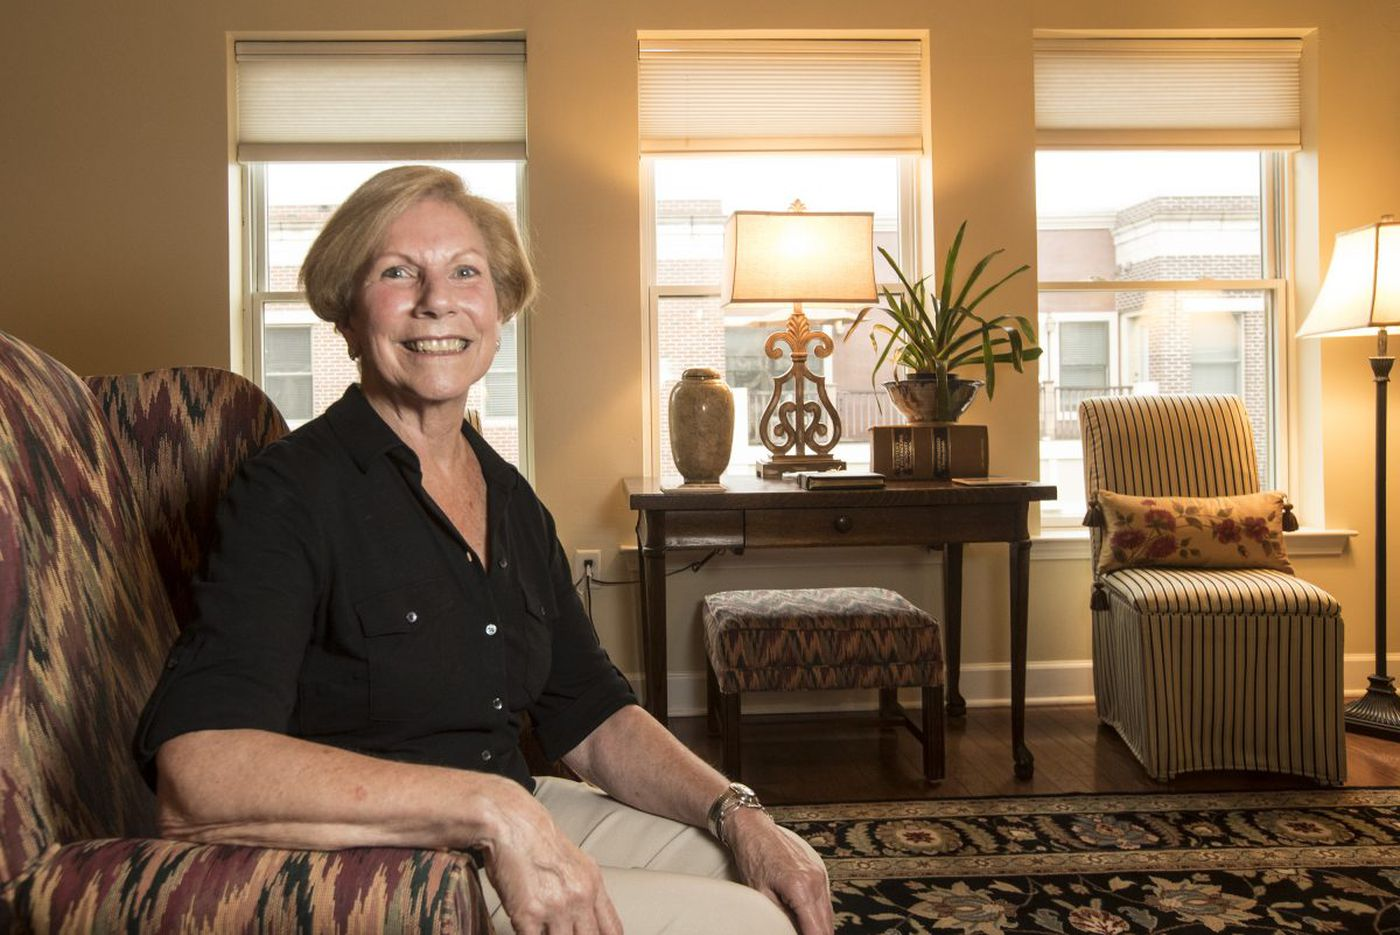 A Collingswood condo where 'small is beautiful'